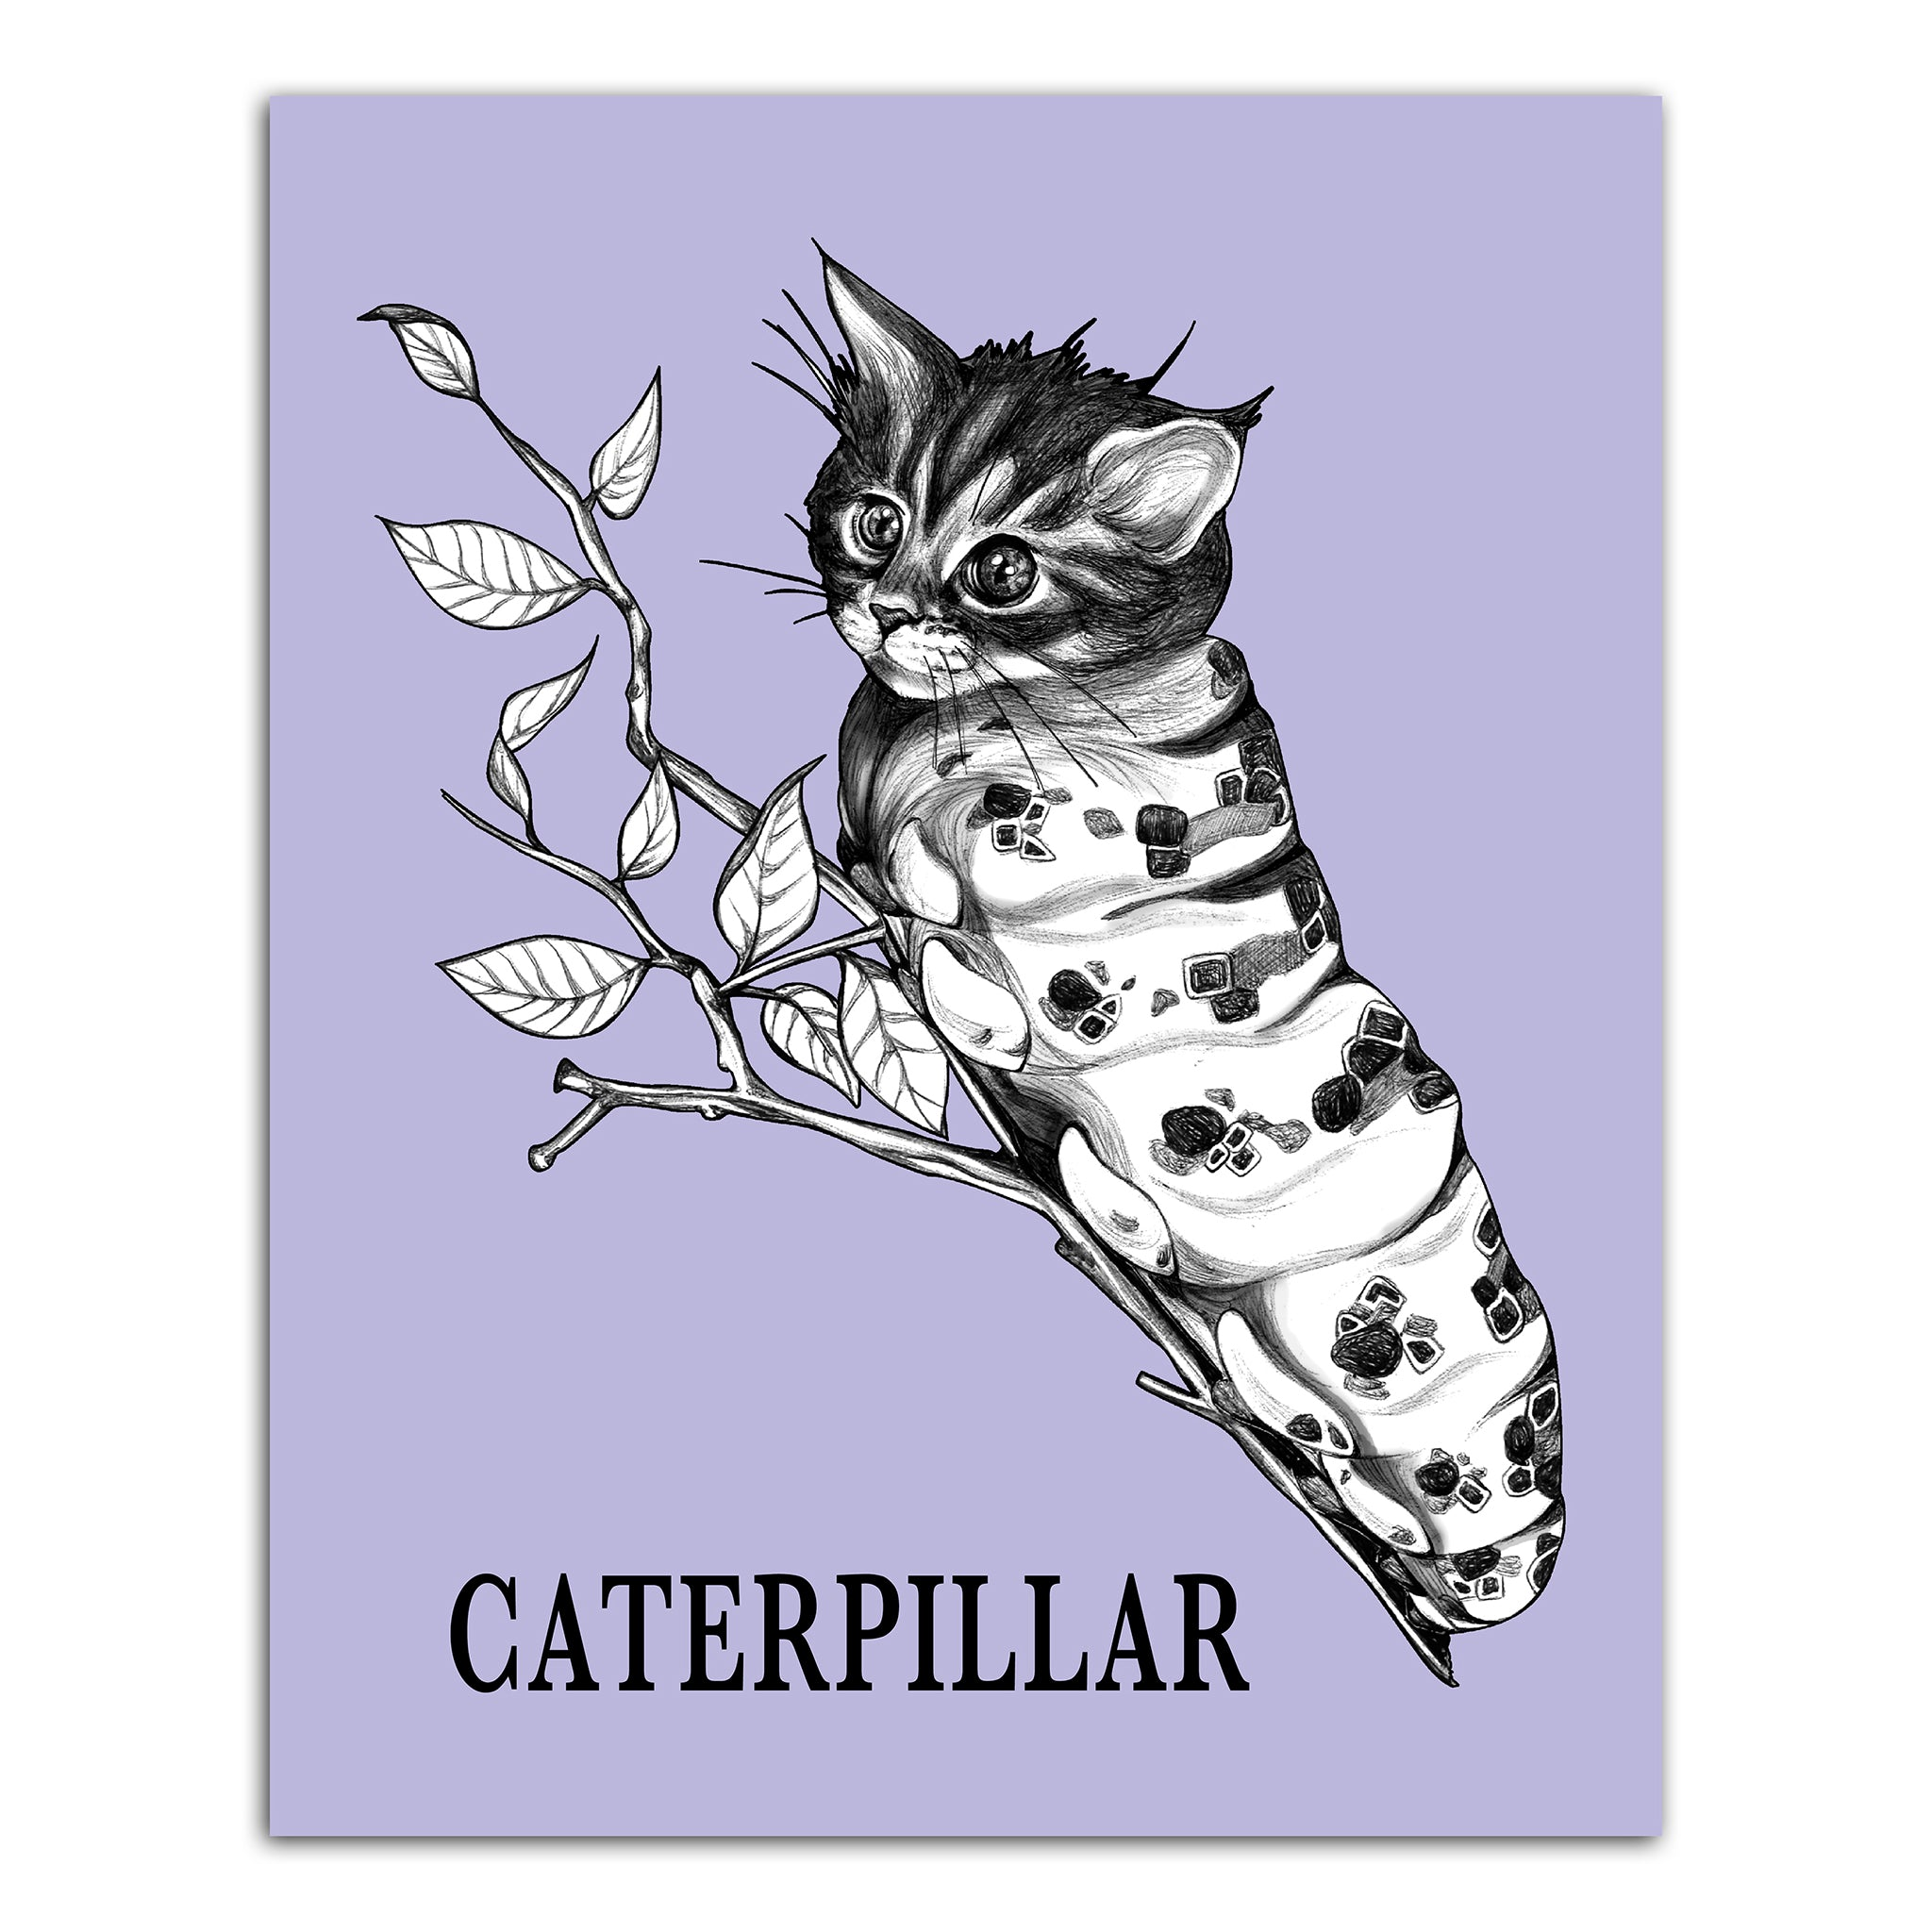 "Caterpillar 8x10"" Art Print"